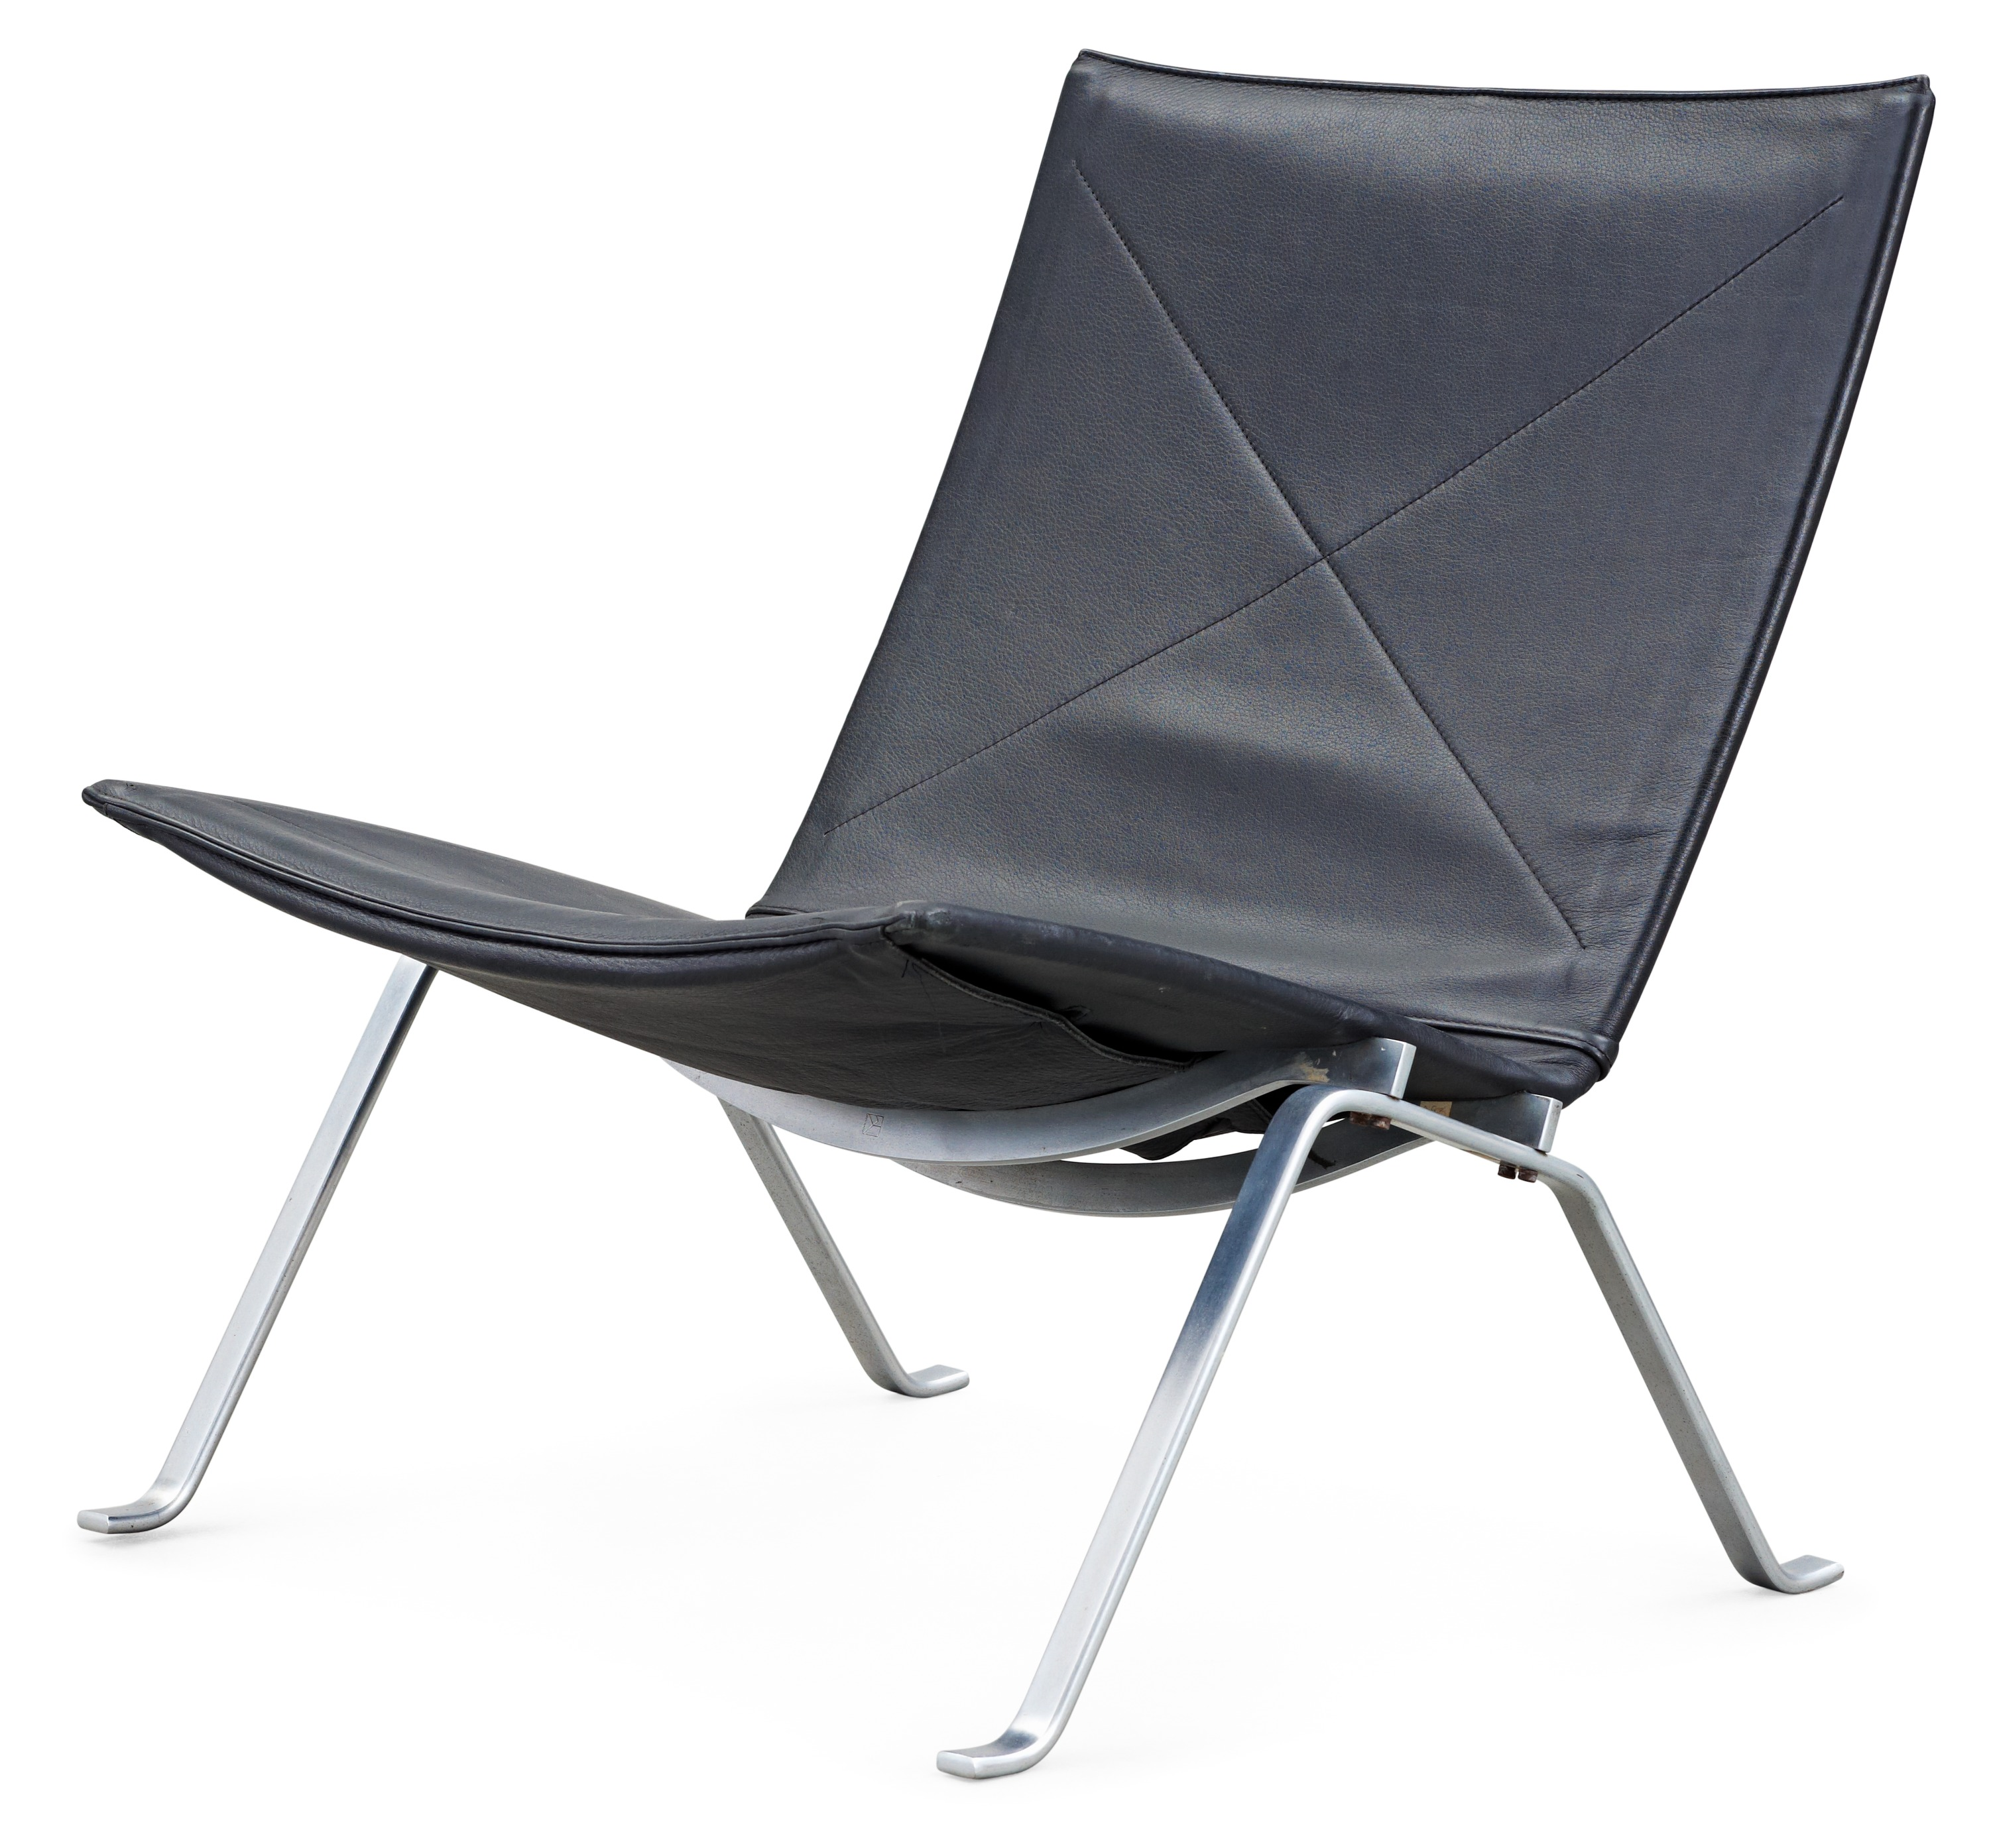 Remarkable A Poul Kjaerholm Pk 22 Black Leather And Steel Easy Chair Inzonedesignstudio Interior Chair Design Inzonedesignstudiocom